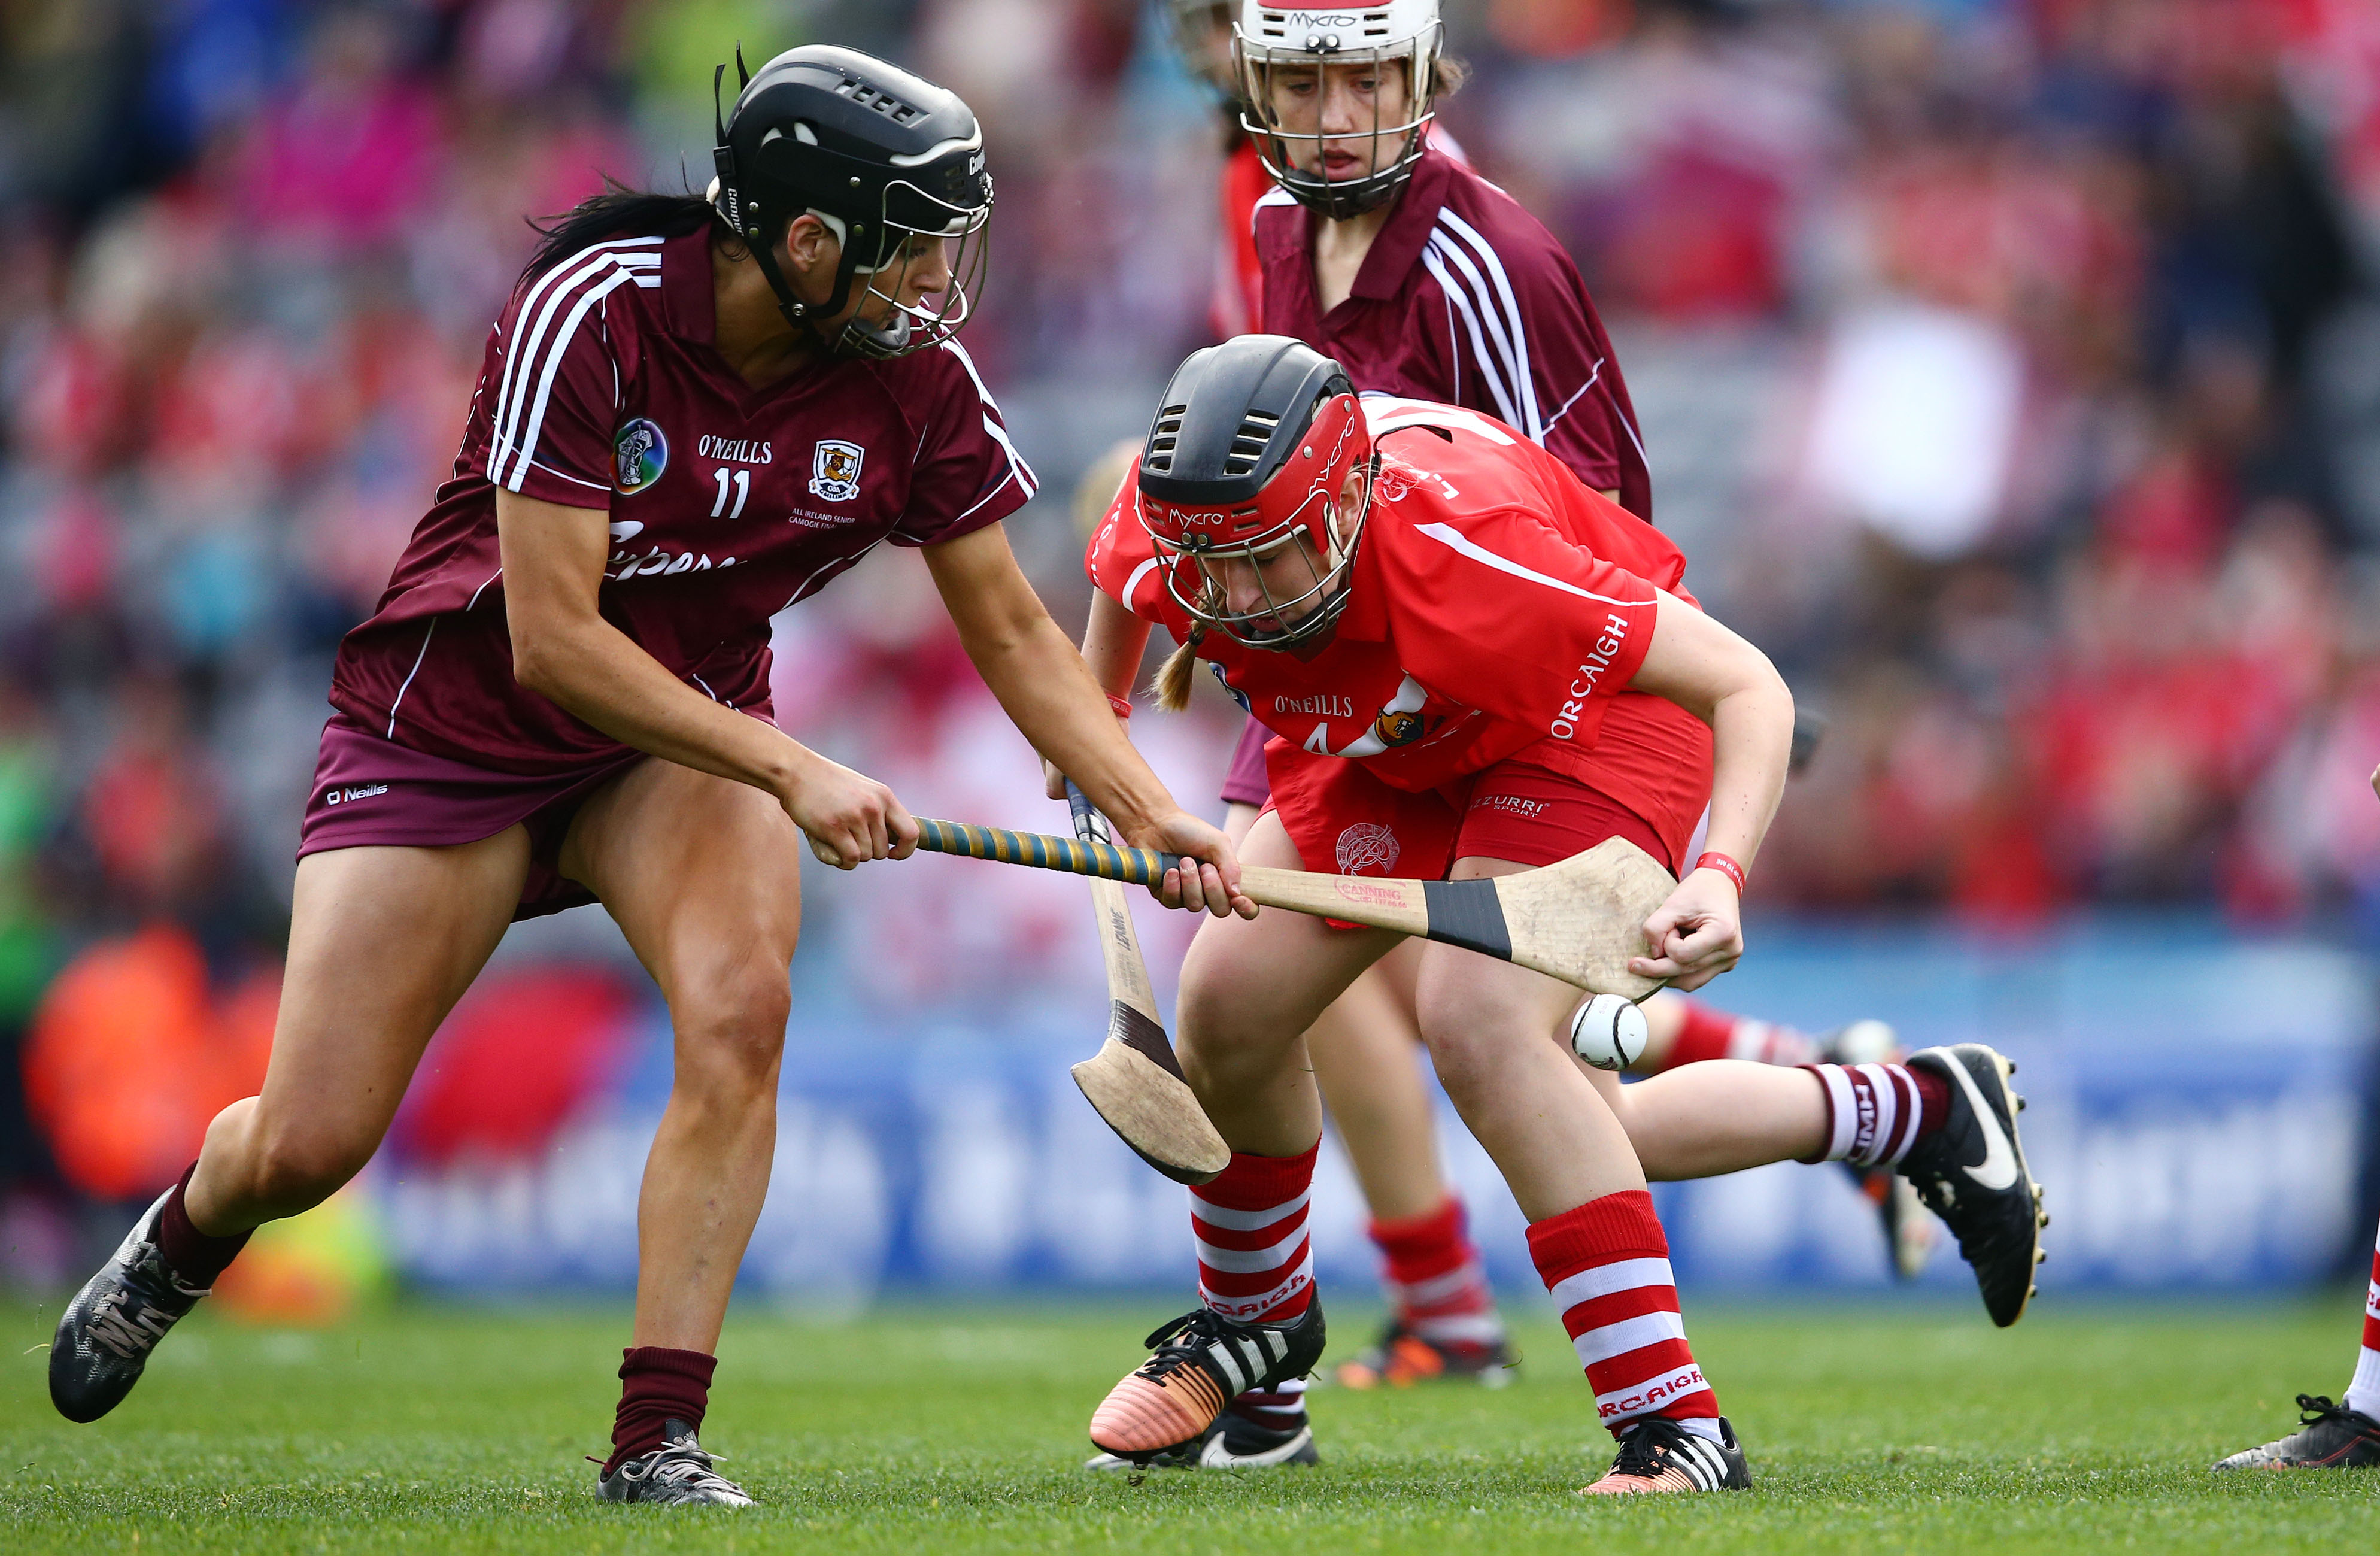 REPRO FREE***PRESS RELEASE NO REPRODUCTION FEE*** Liberty Insurance Senior Camogie Championship Final, Croke Park, Dublin 13/9/2015 Cork vs Galway Cork's Leanne O'Sullivan and Niamh McGrath of Galway Mandatory Credit ©INPHO/Cathal Noonan